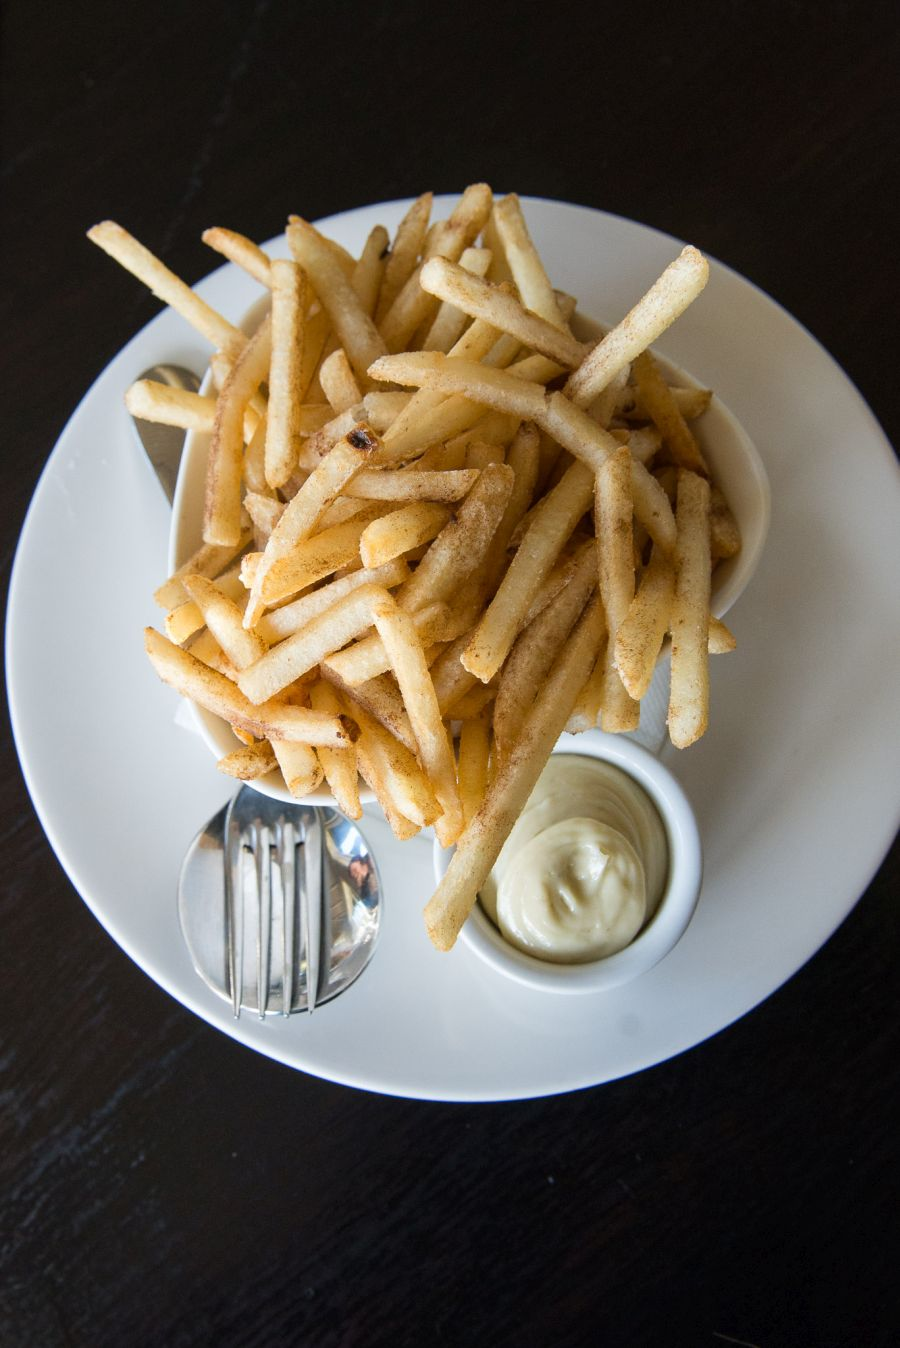 Porcini dusted shoestring fries with blue cheese mayo (NZ$7)